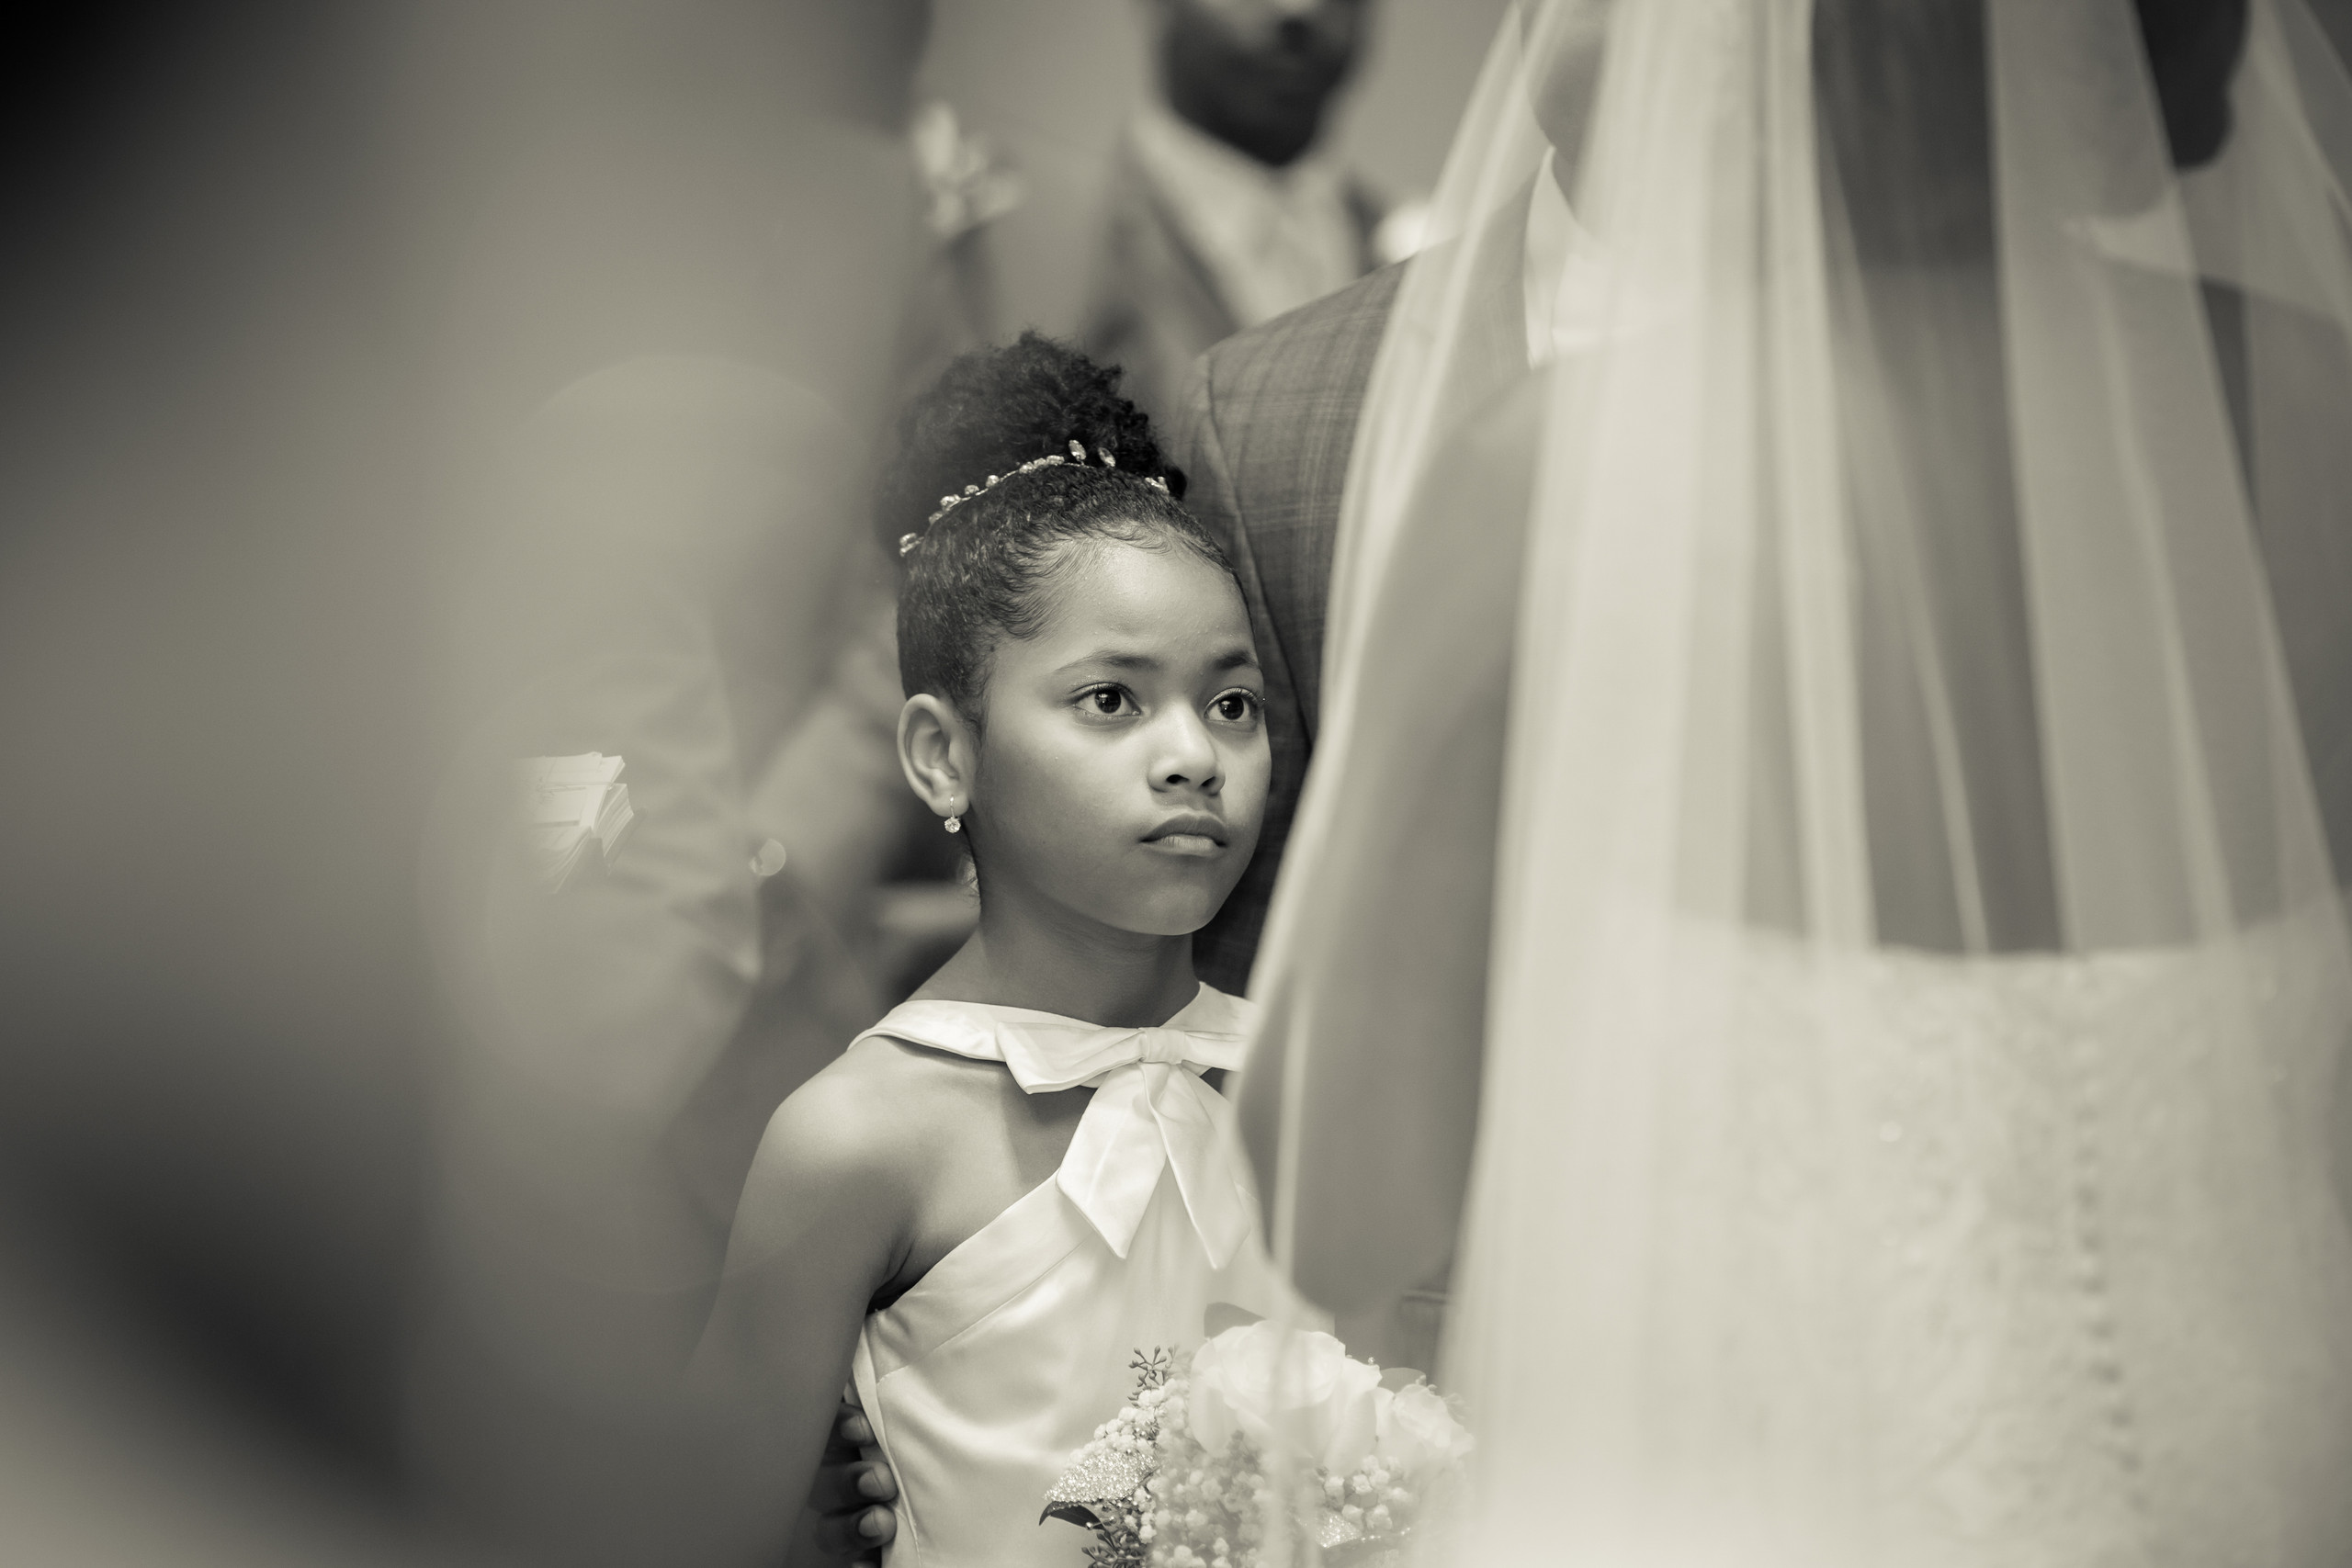 The bride recites vows to the groom's daughter during the wedding ceremony at the Hilton Main in Norfolk, Virginia.